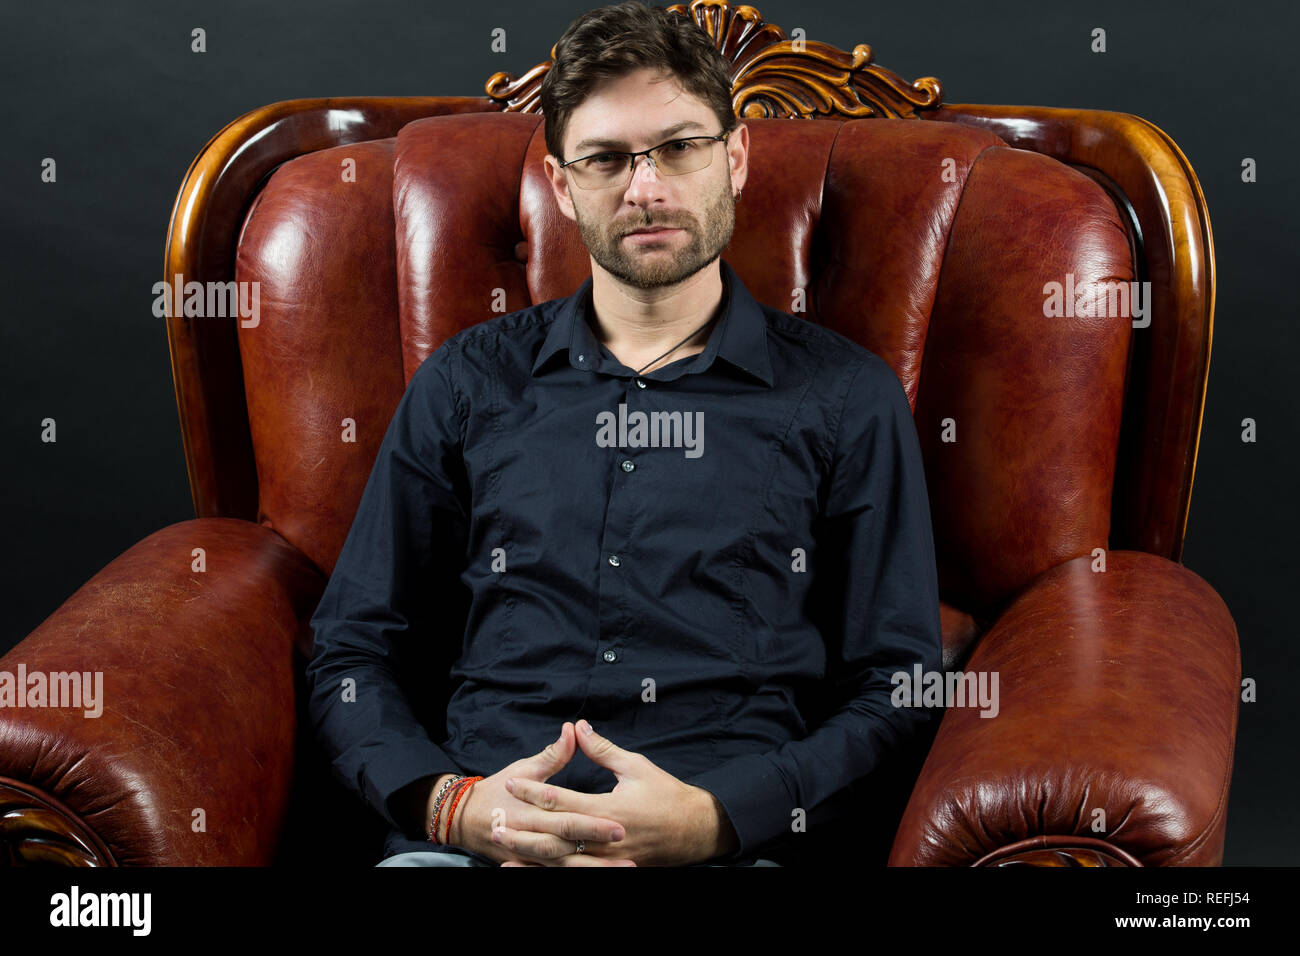 Man relax in brown leather armchair. Macho with beard on unshaven face. Bearded man wear shirt and glasses. Barber salon and skincare. Fashion accessory and furniture. - Stock Image